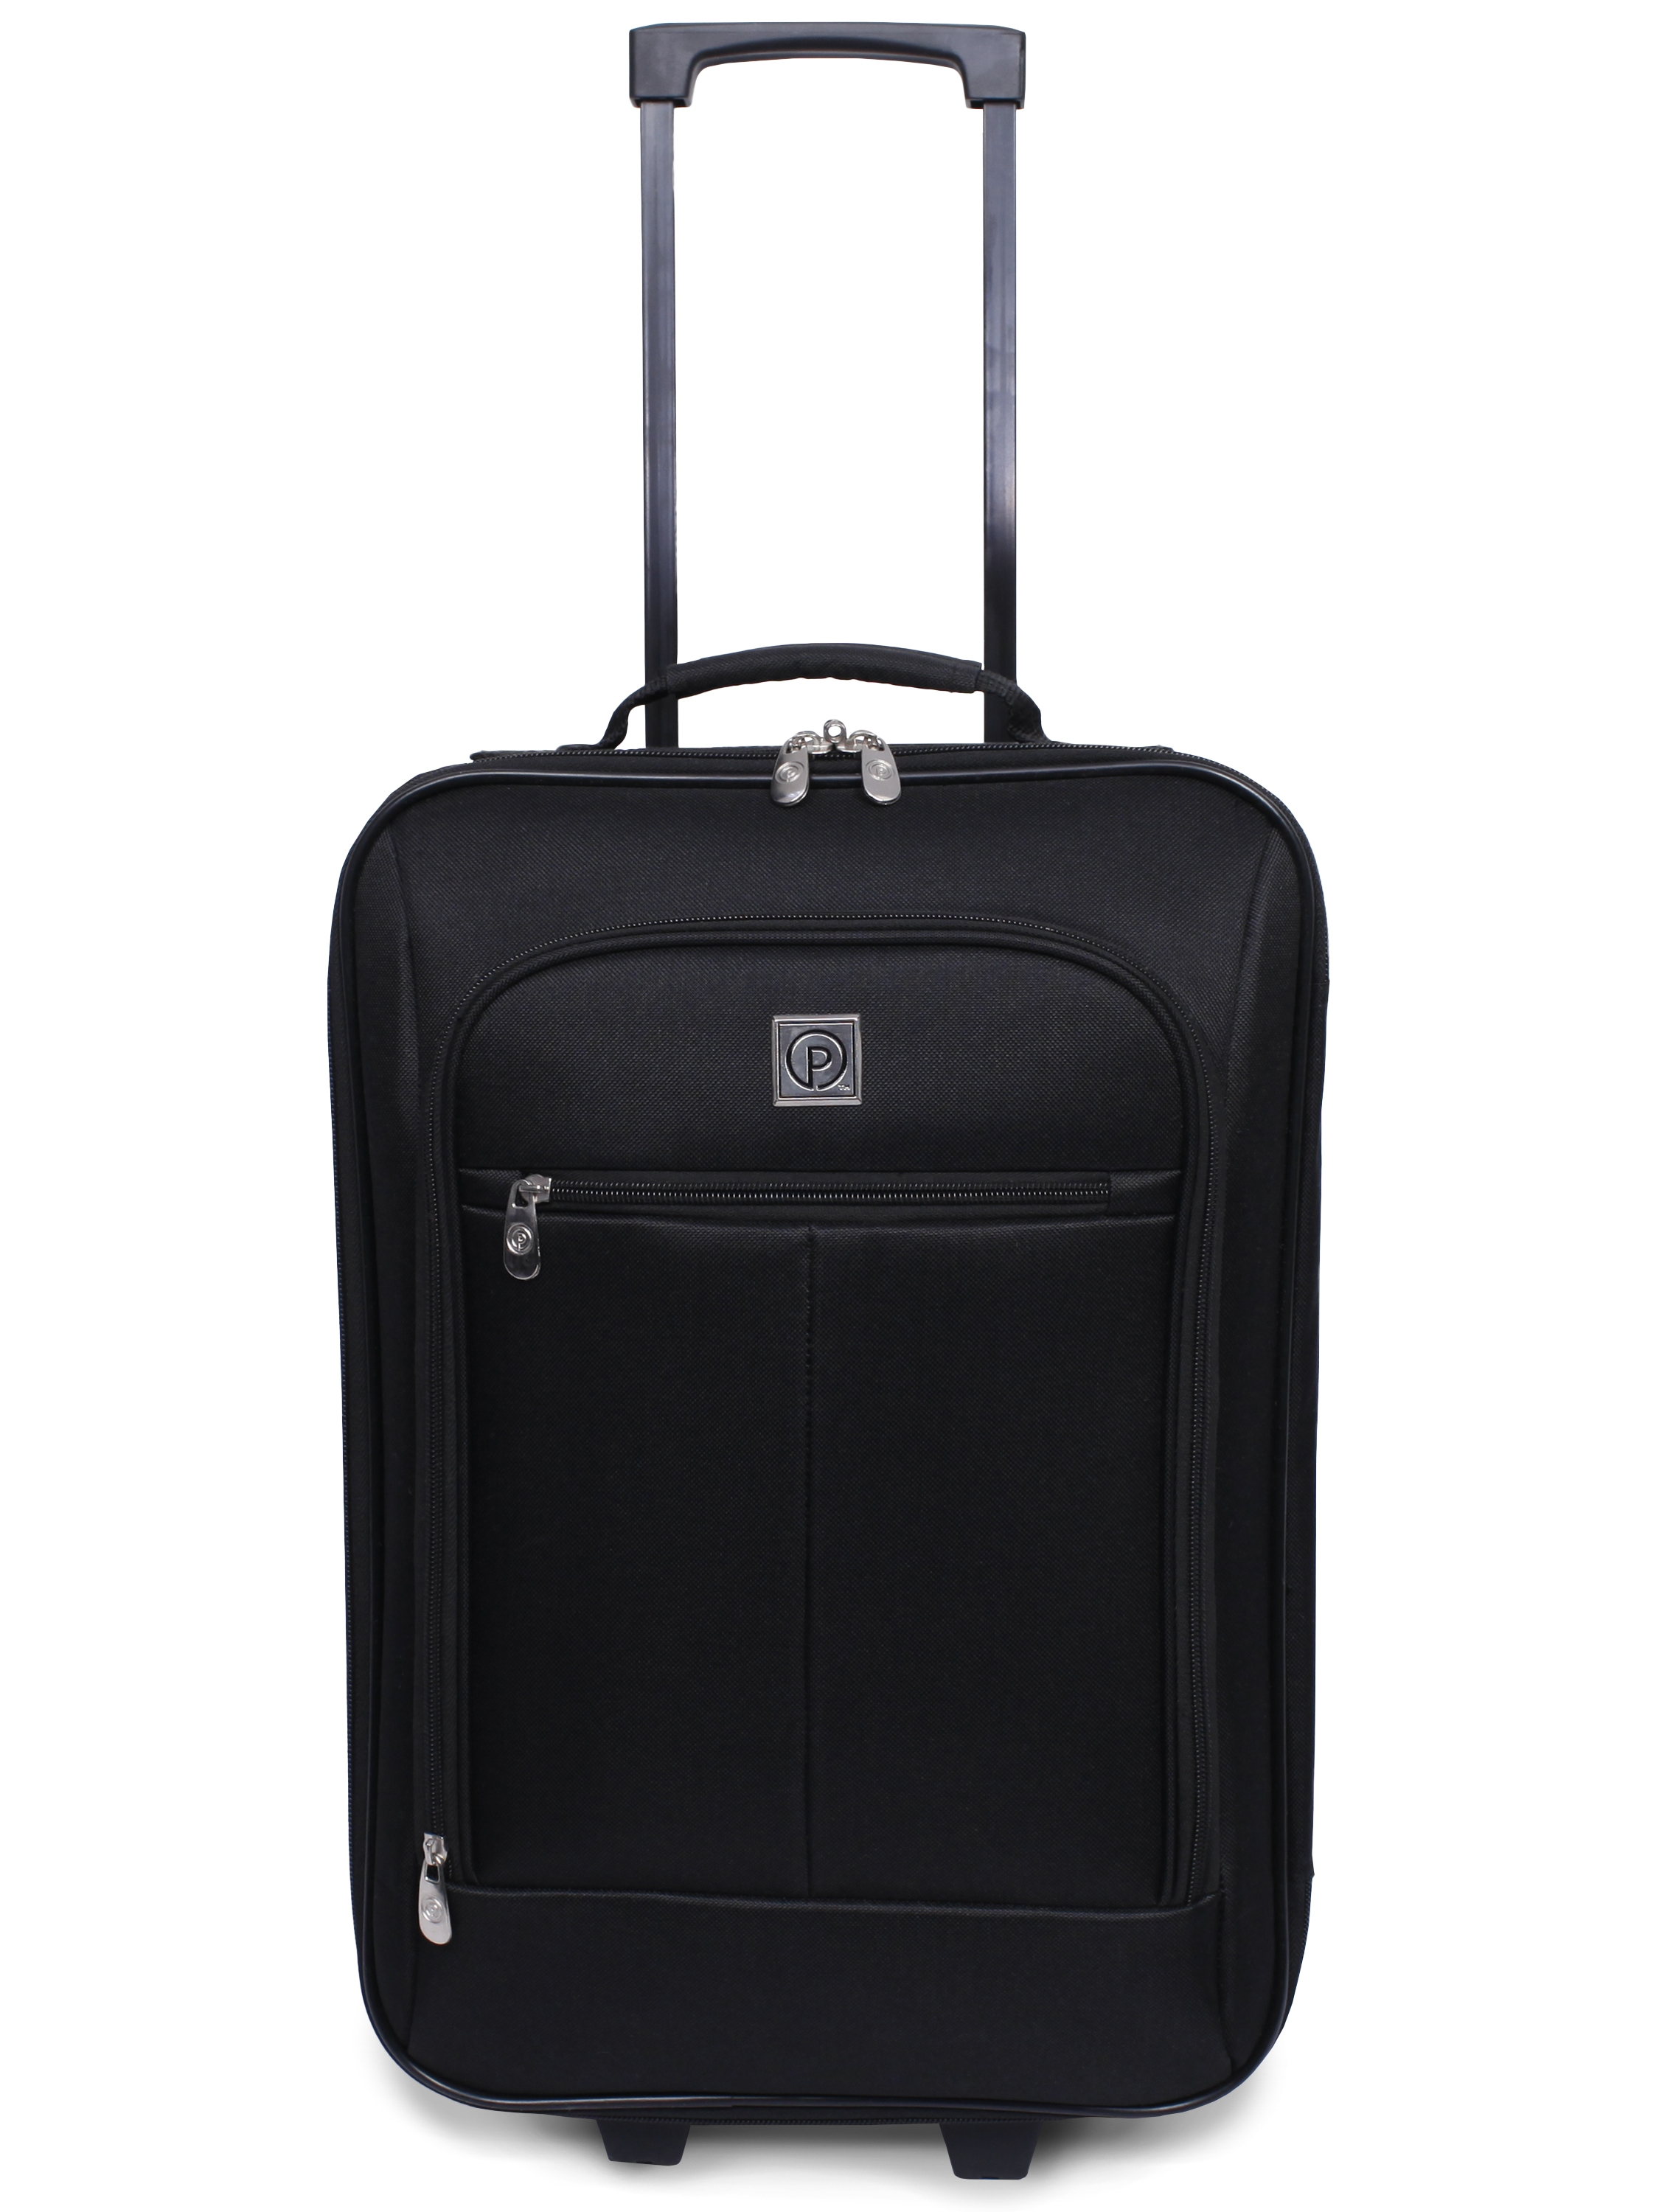 Ikase Hardside Spinner Luggage Marilyn 14 02